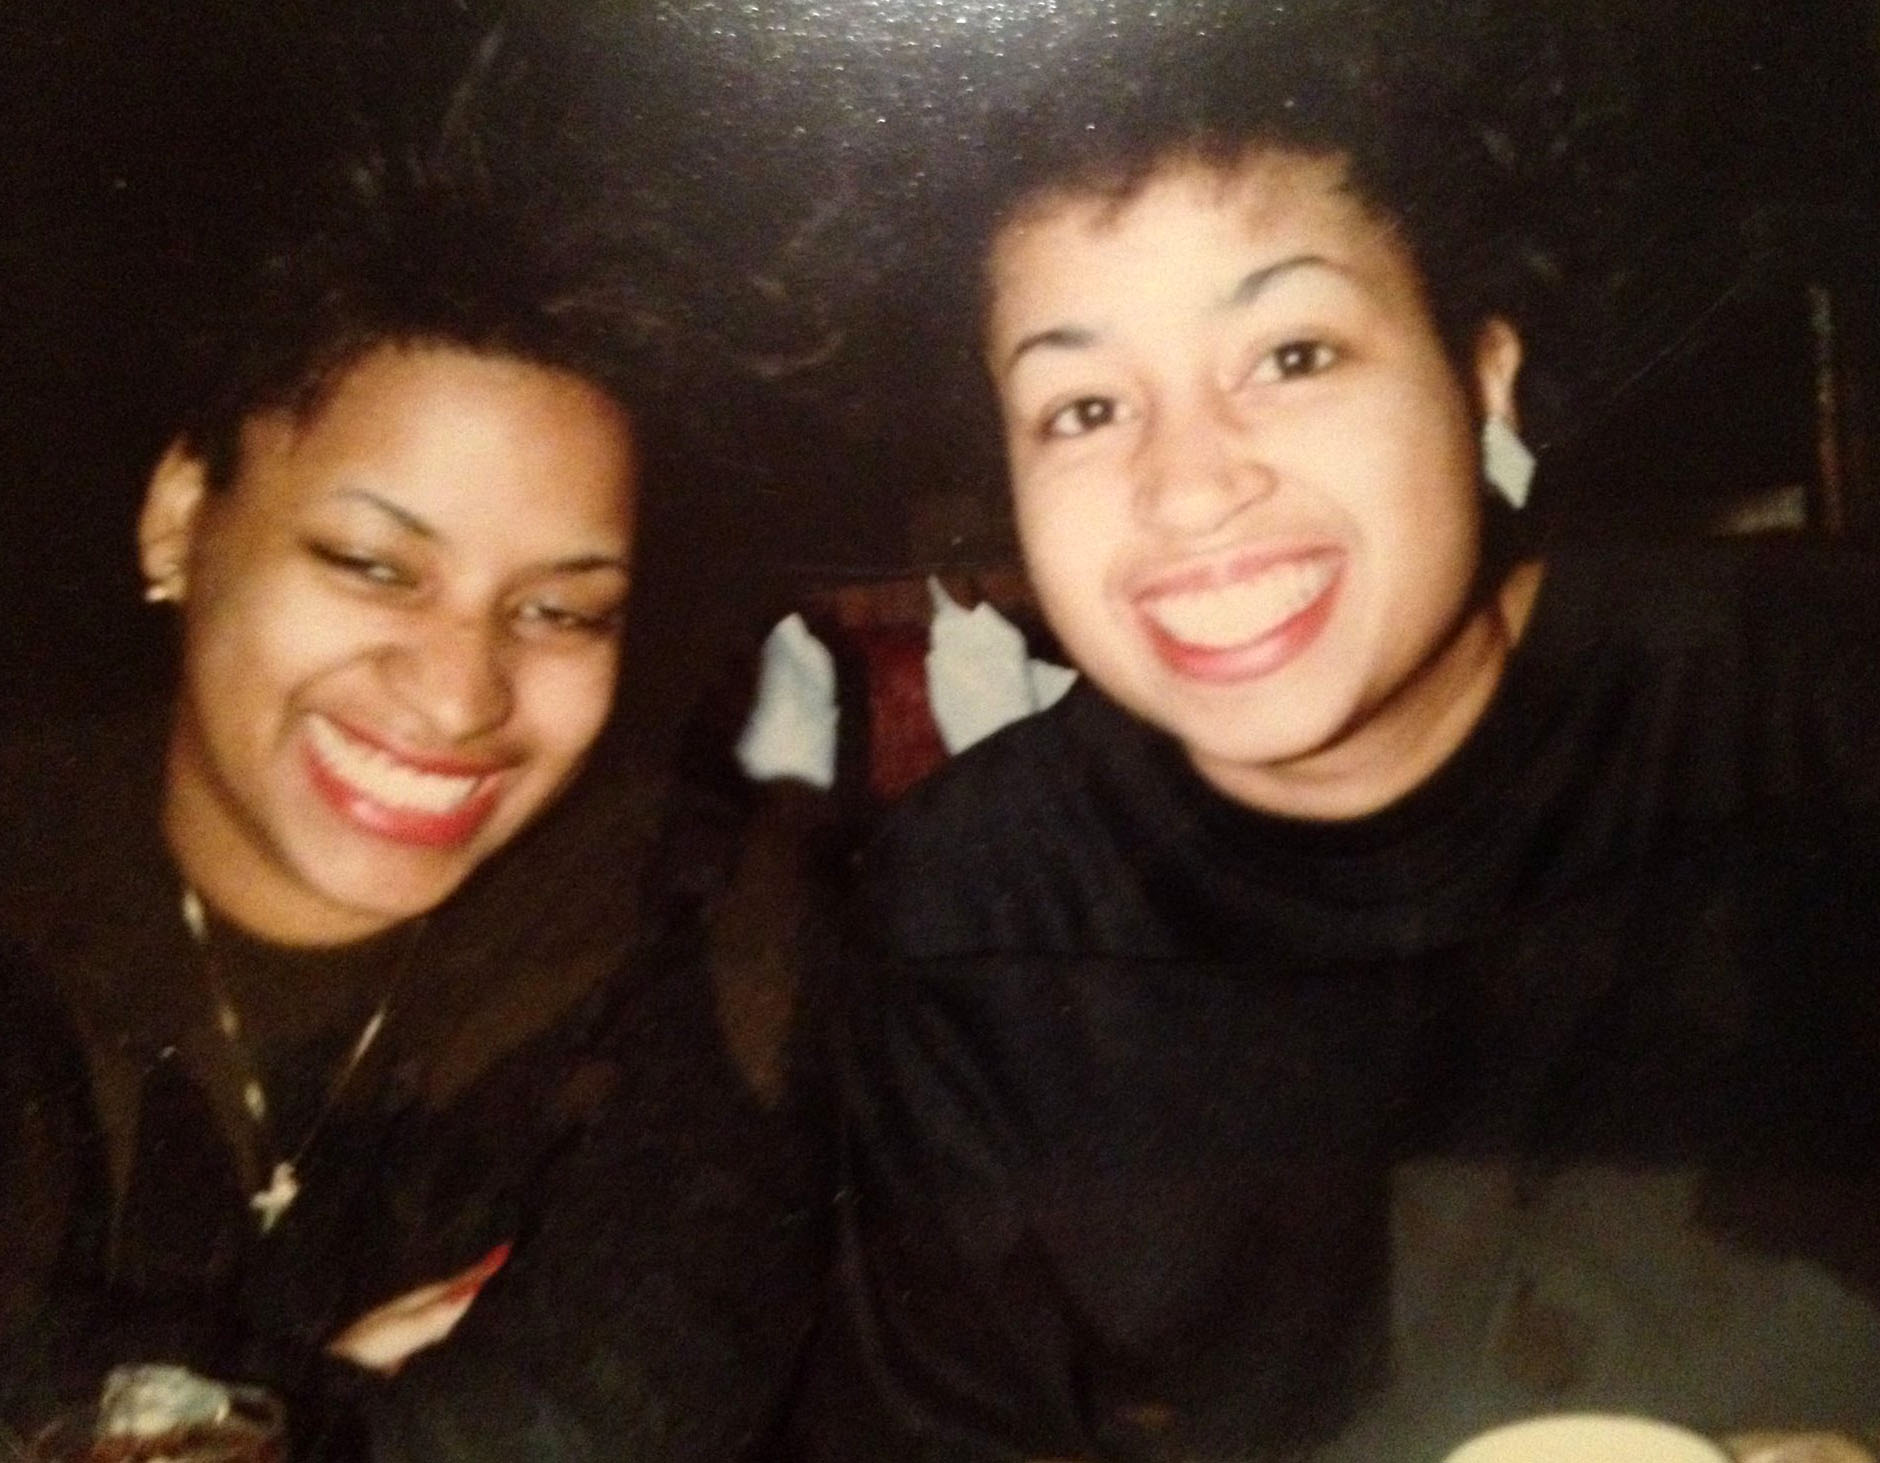 Yvonne, left, with her late sister Margie, shortly before she was killed in a car accident.